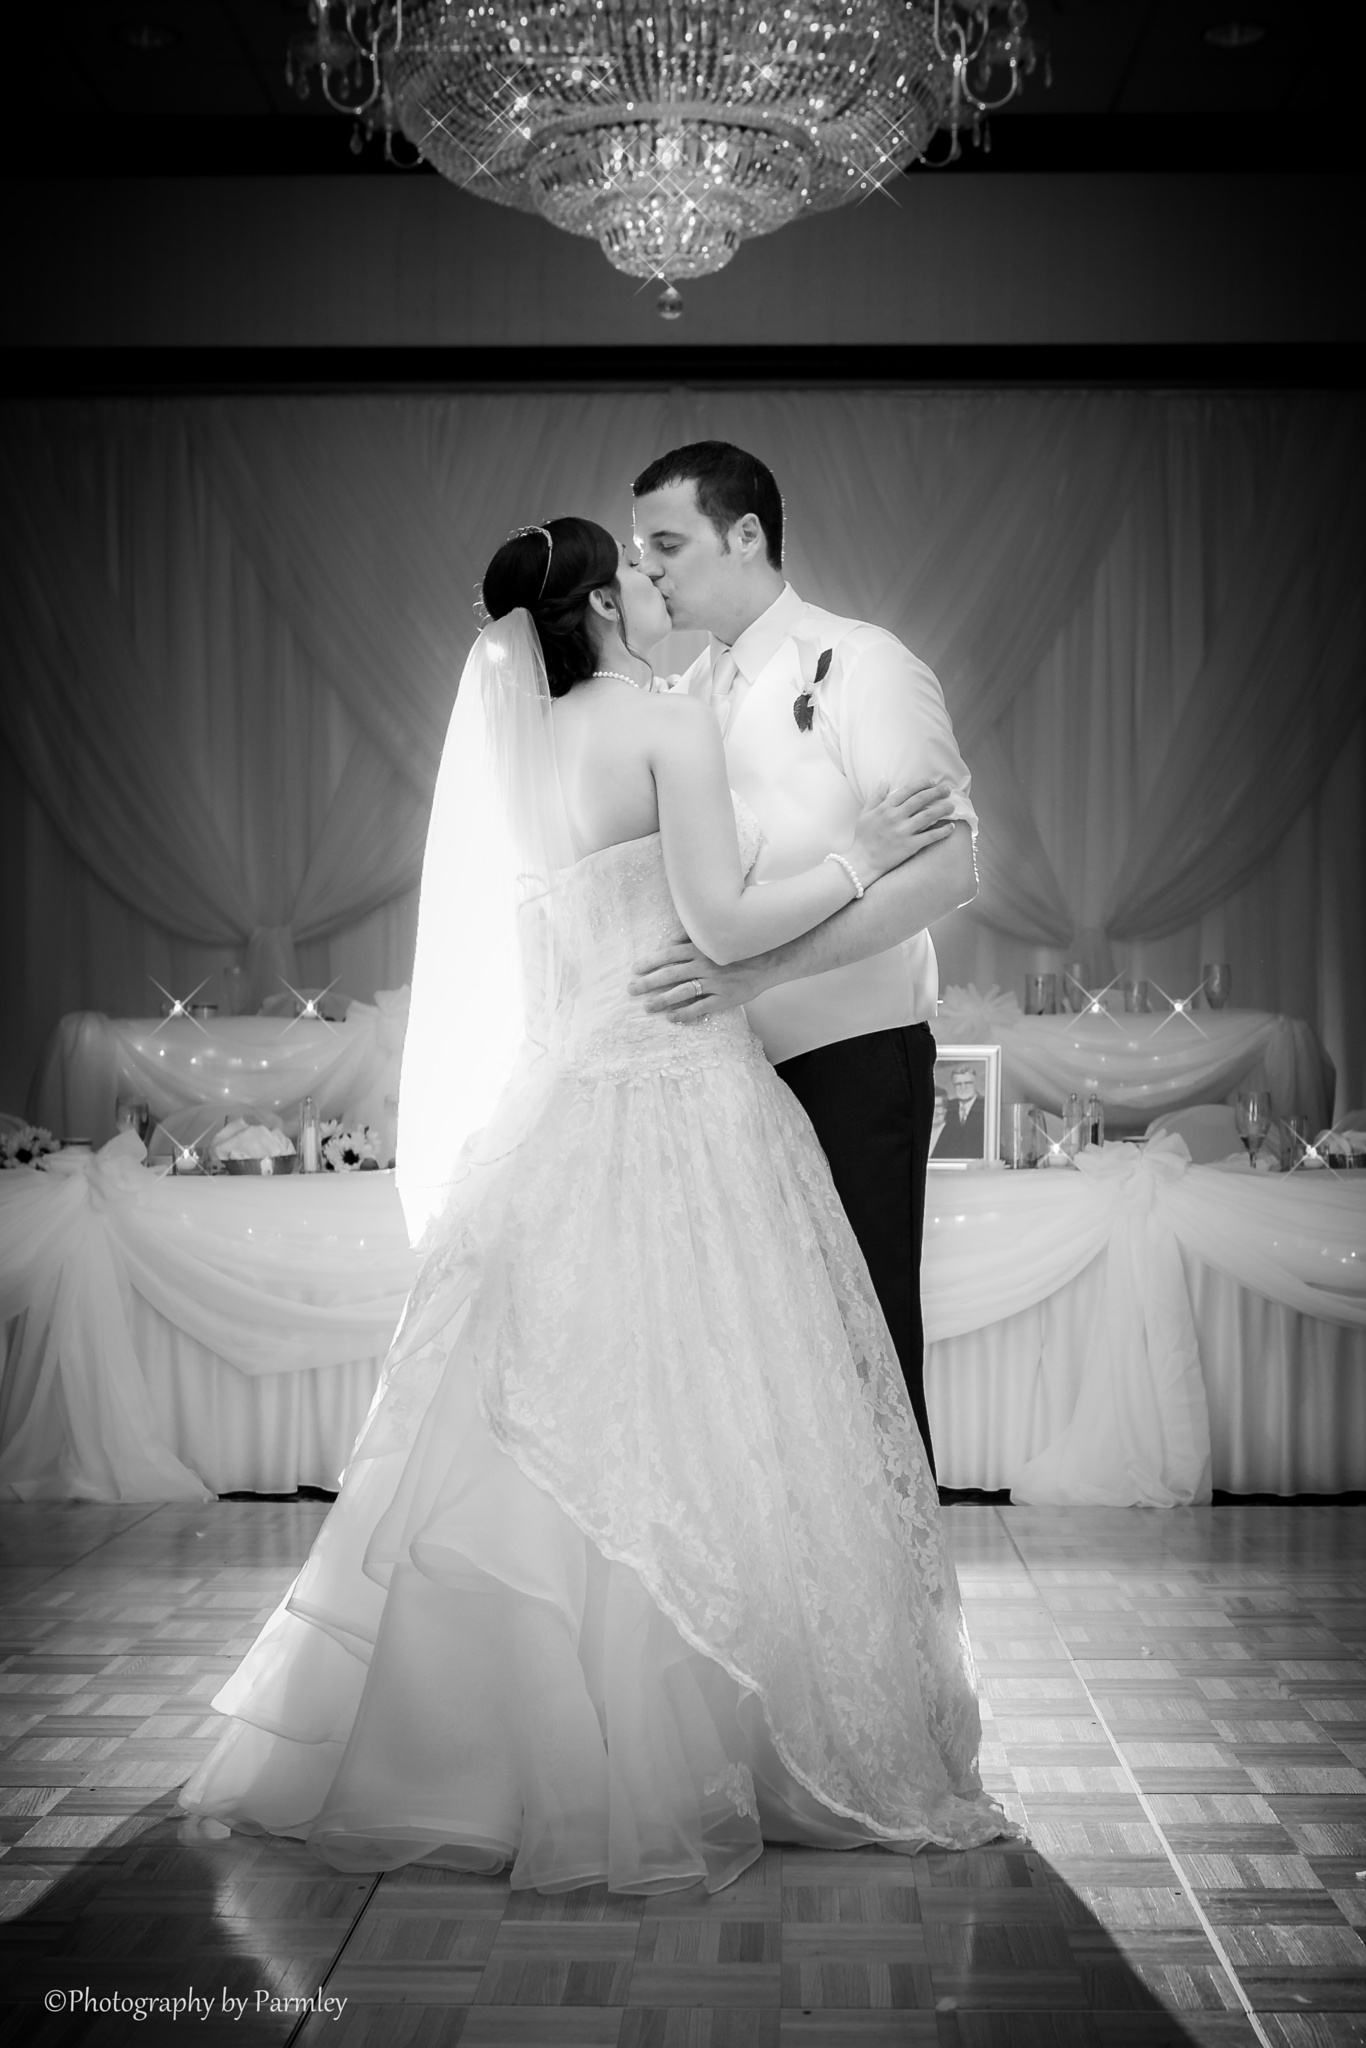 First Dance by JP Parmley